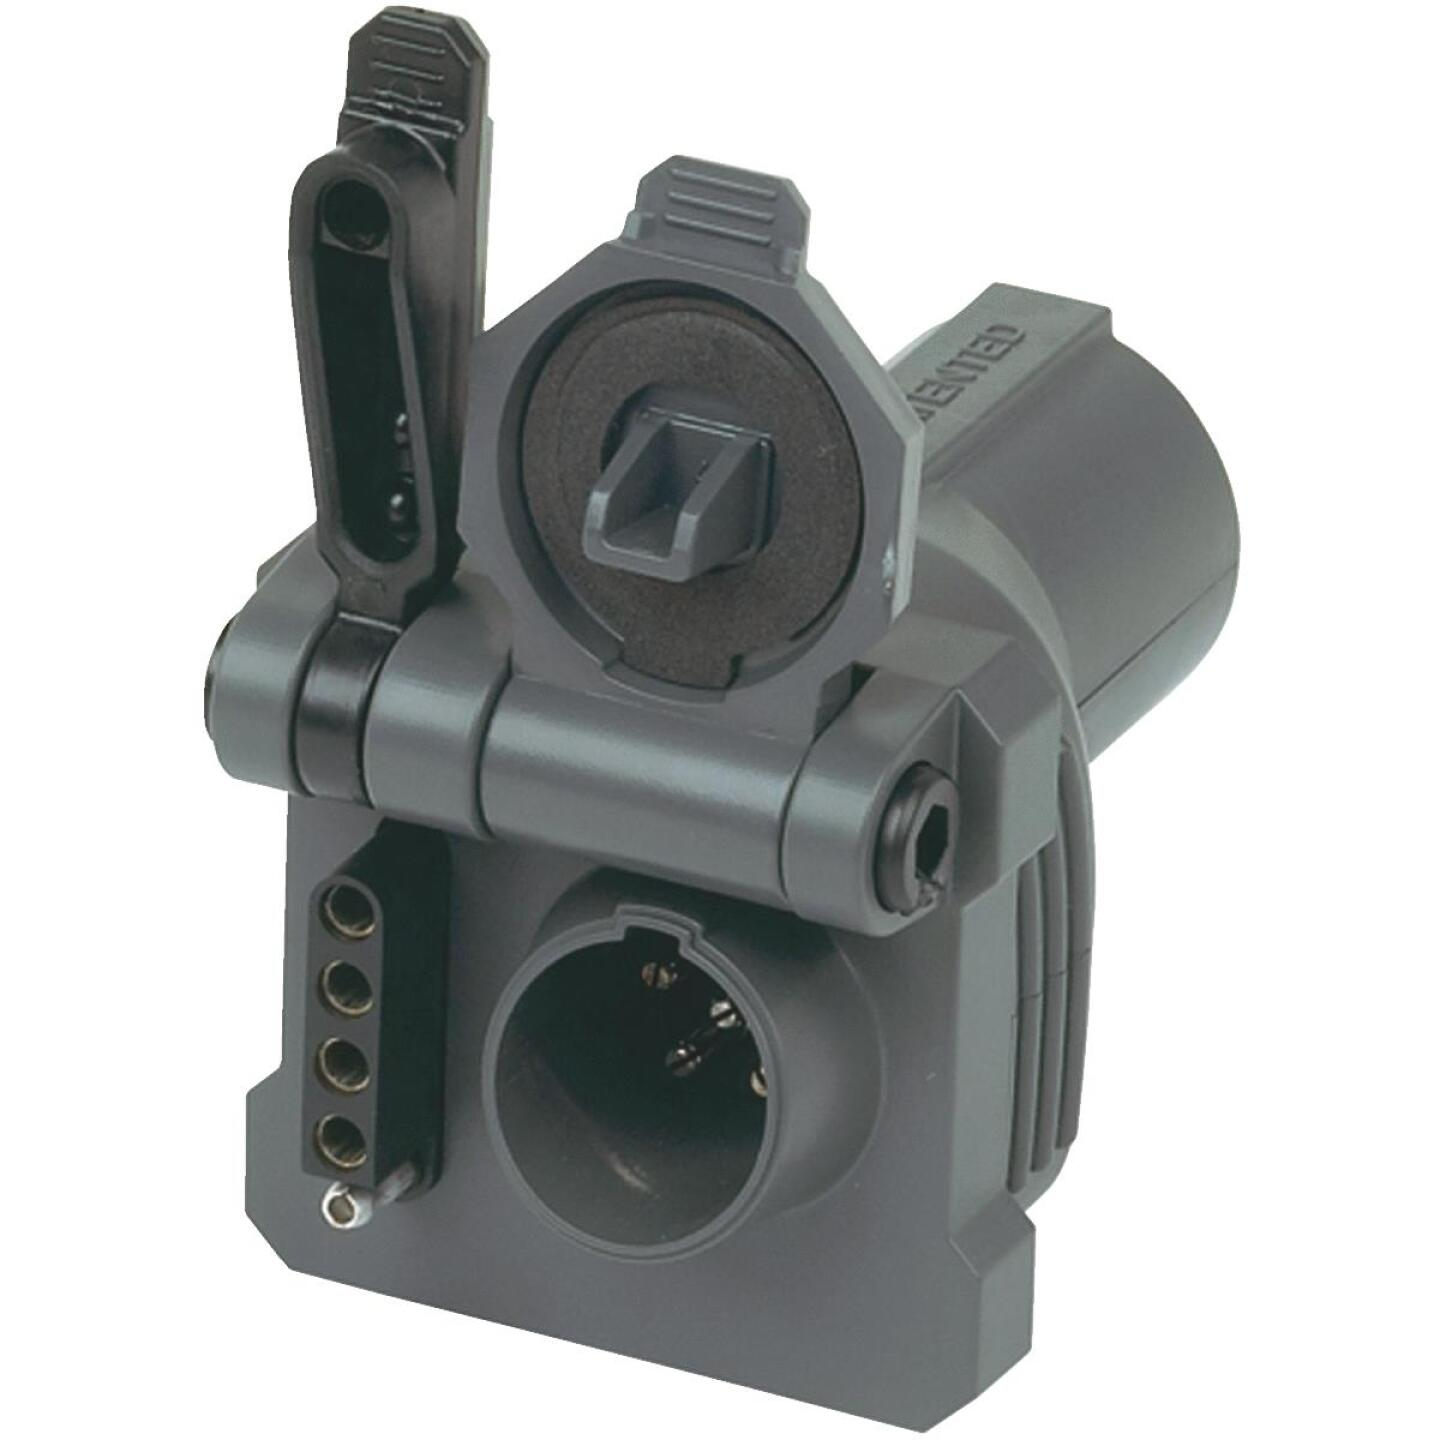 Hopkins Endurance Multi-Tow 7-Blade to 6, 5, & 4-Plug-In Adapter Image 1